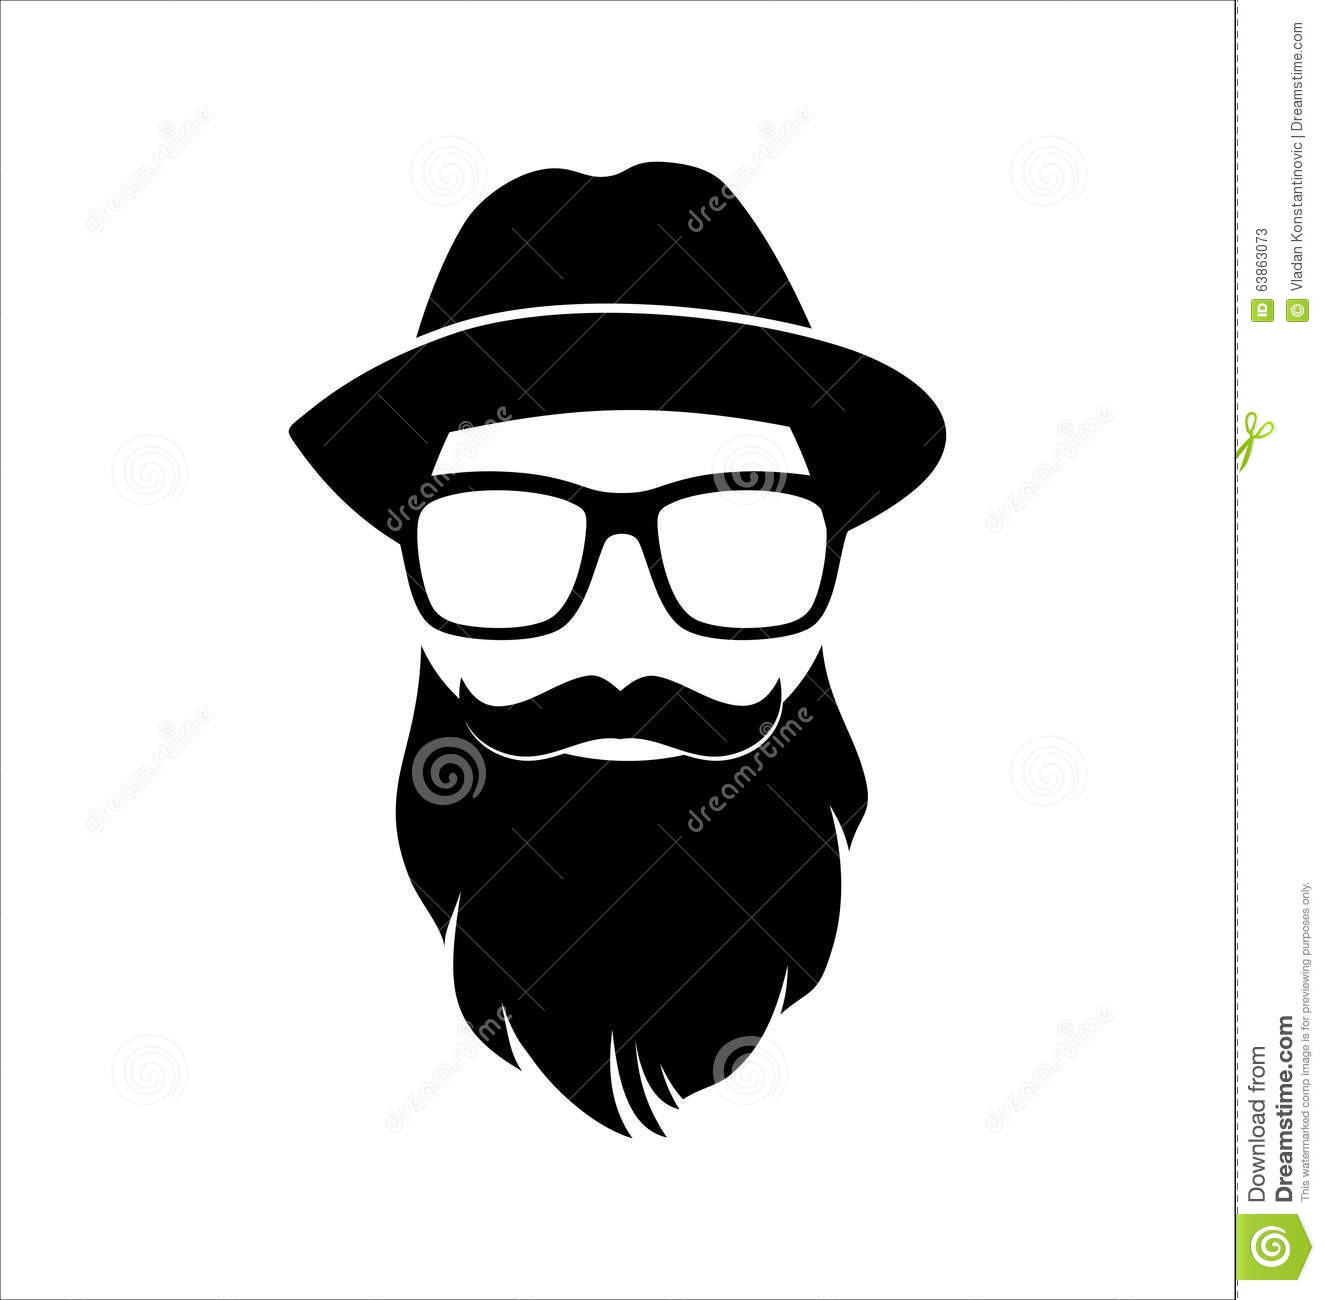 Hipster Black And White. Geek Glasses .Mustaches. Stock ...